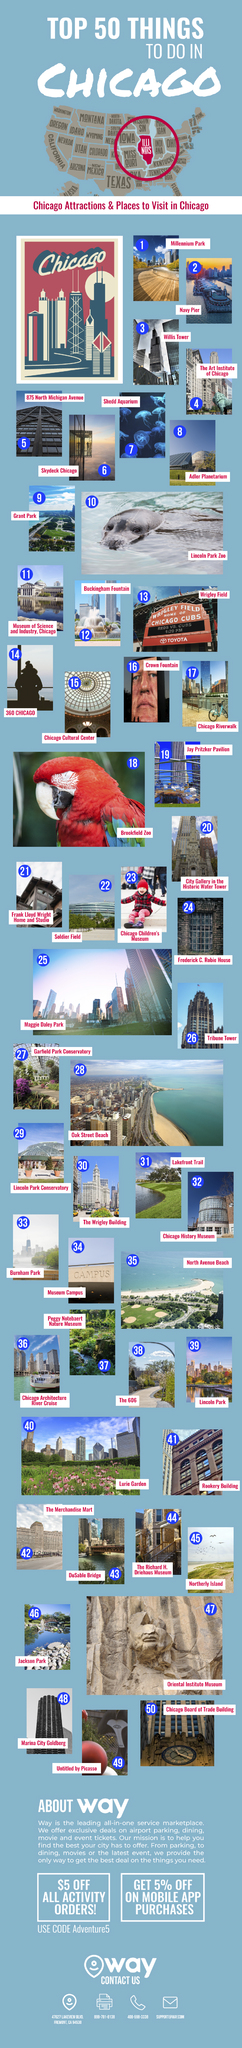 Top-Things-to-Do-in-Chicago-infographic-lkrllc